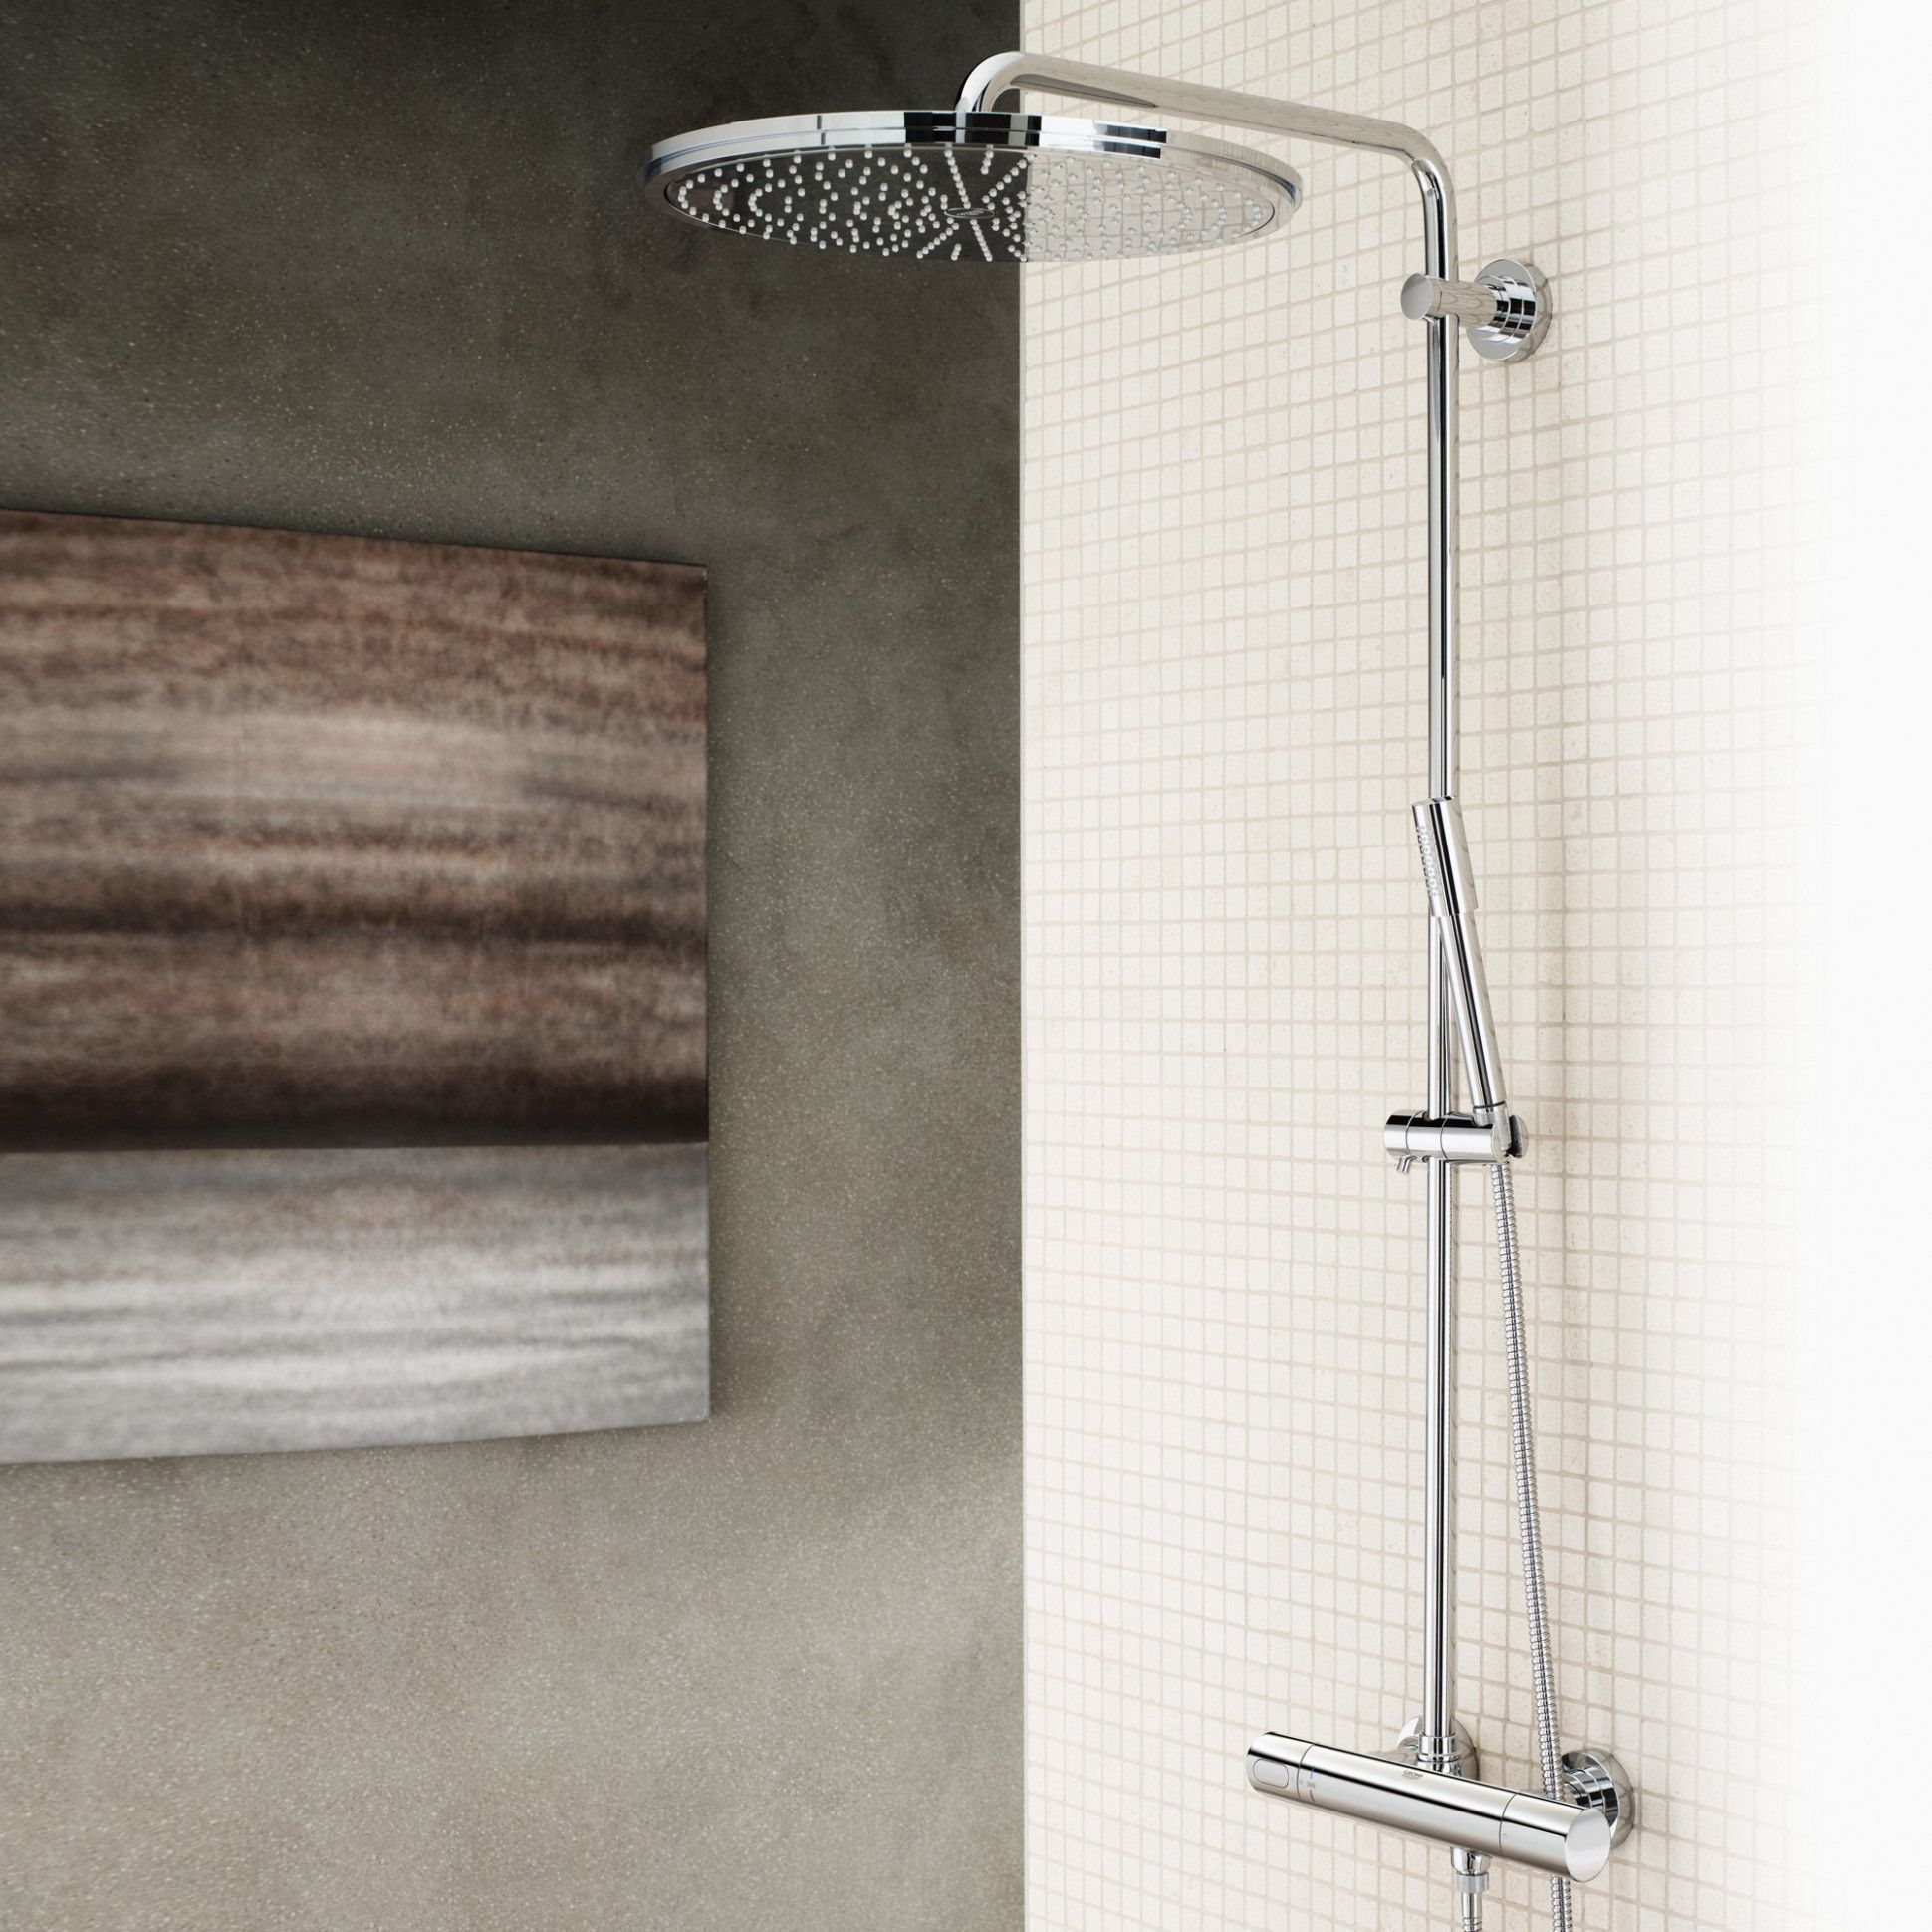 Grohe Regendouche Euphoria Pin By Home Design On Home Design Shower Systems Bathroom